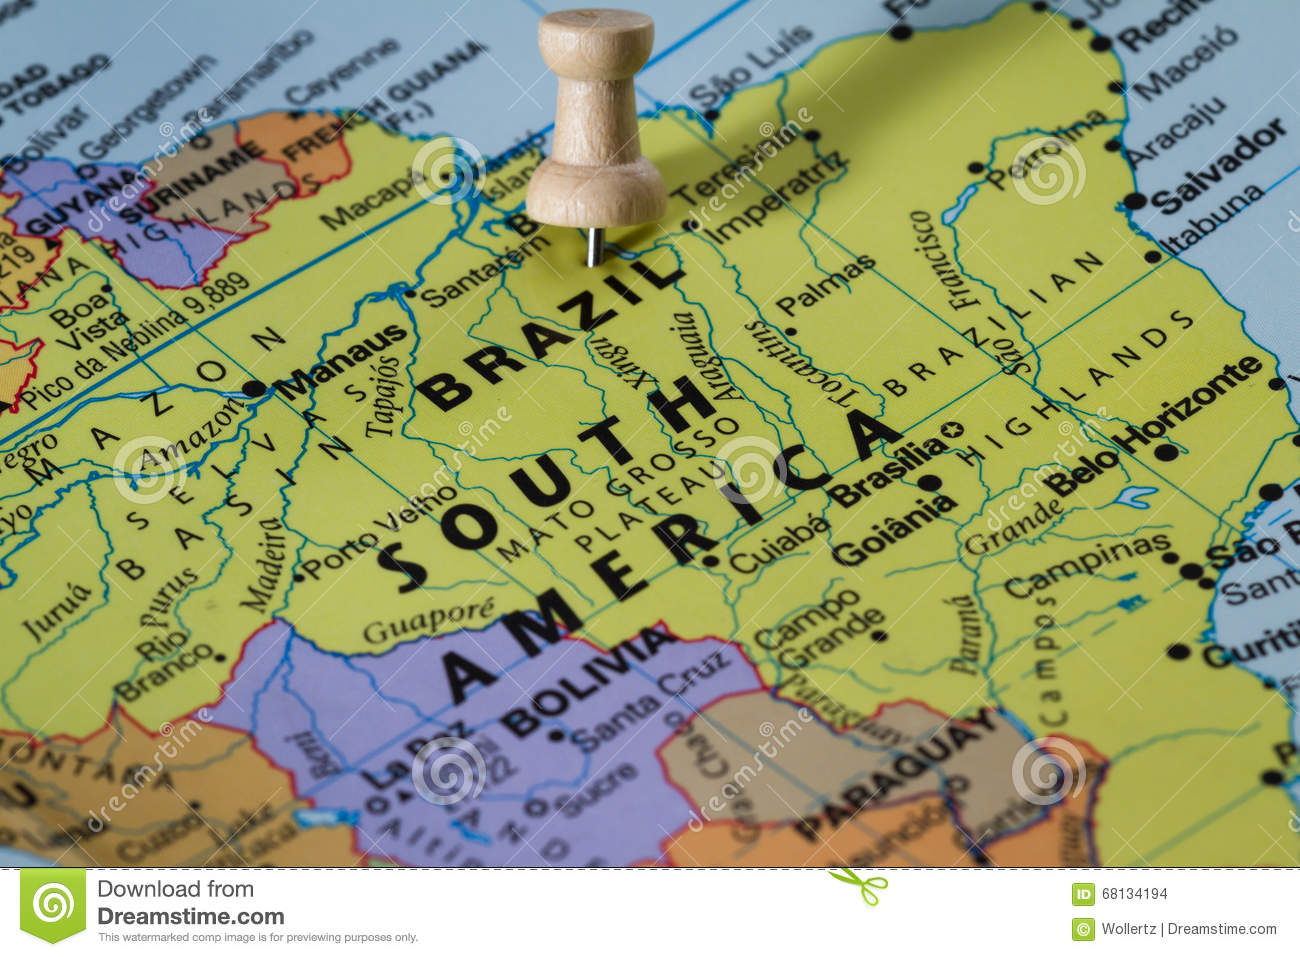 Picture of: 1 909 Brazil Map Photos Free Royalty Free Stock Photos From Dreamstime